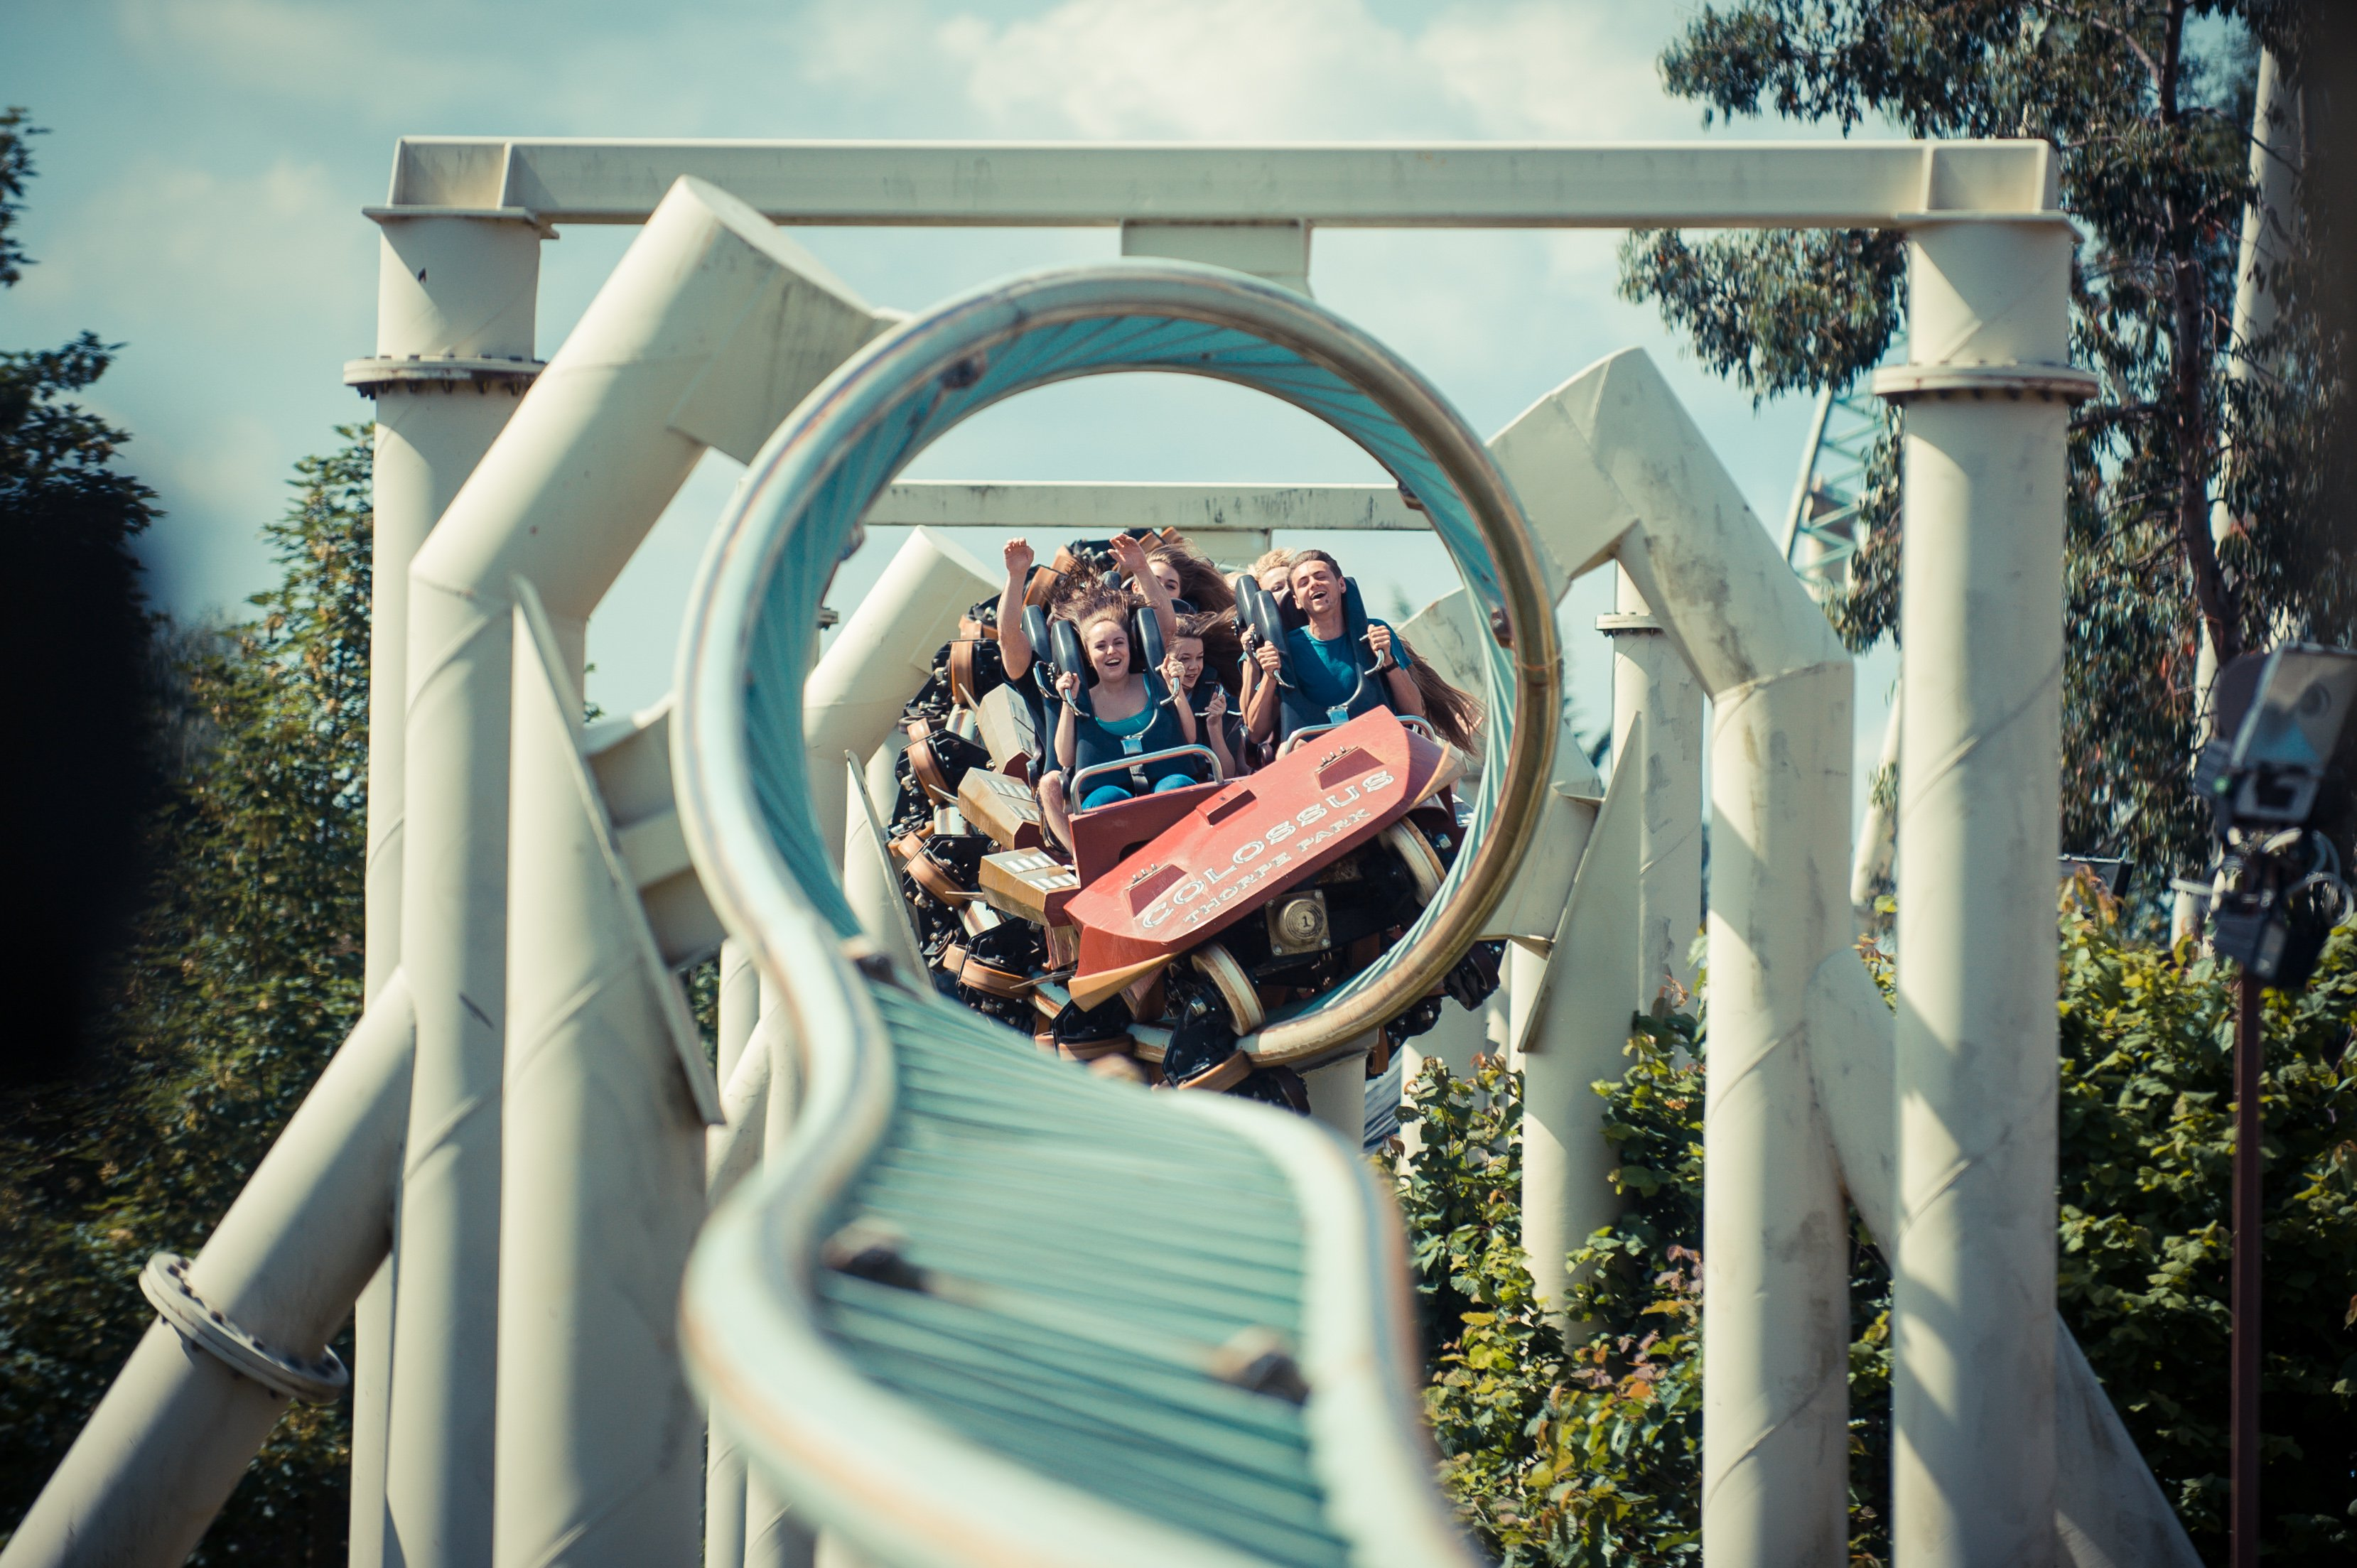 Up to 40% off your Thorpe Park Onsite Hotel Stay Plus FREE Park Tickets